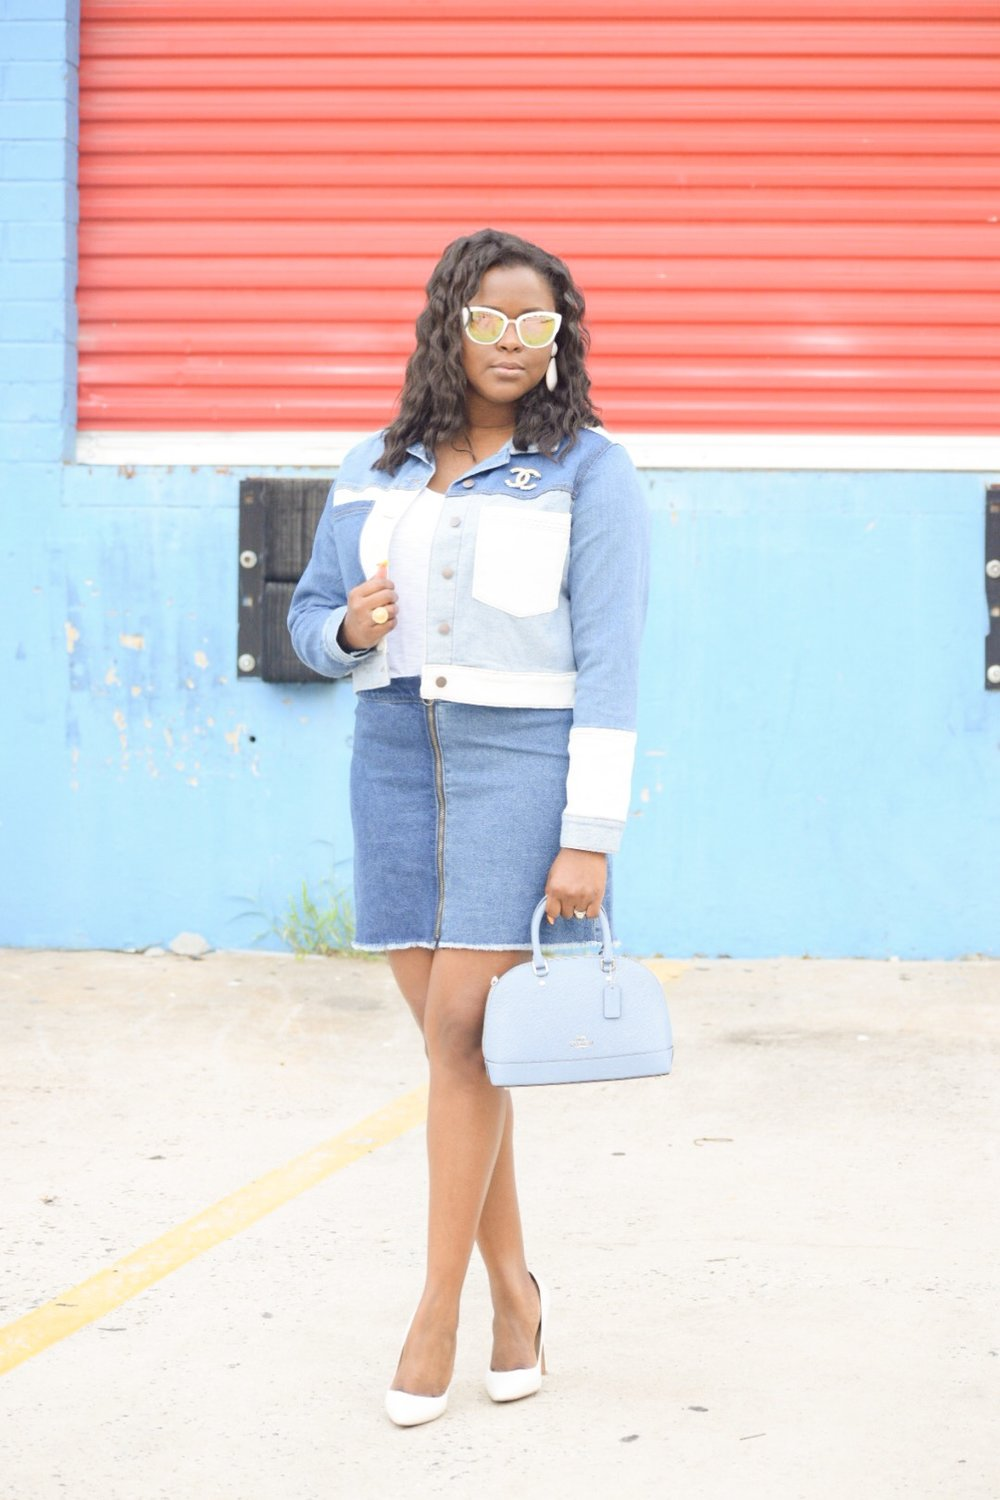 Wild Fable  Jacket  &  Skirt , Aldo Pumps (similar  here ), Coach Outlet Sierra  Satchel , Nordstrom Sunnies, Zara Earrings (sold out), Chanel  Ring  & Brooch (old)